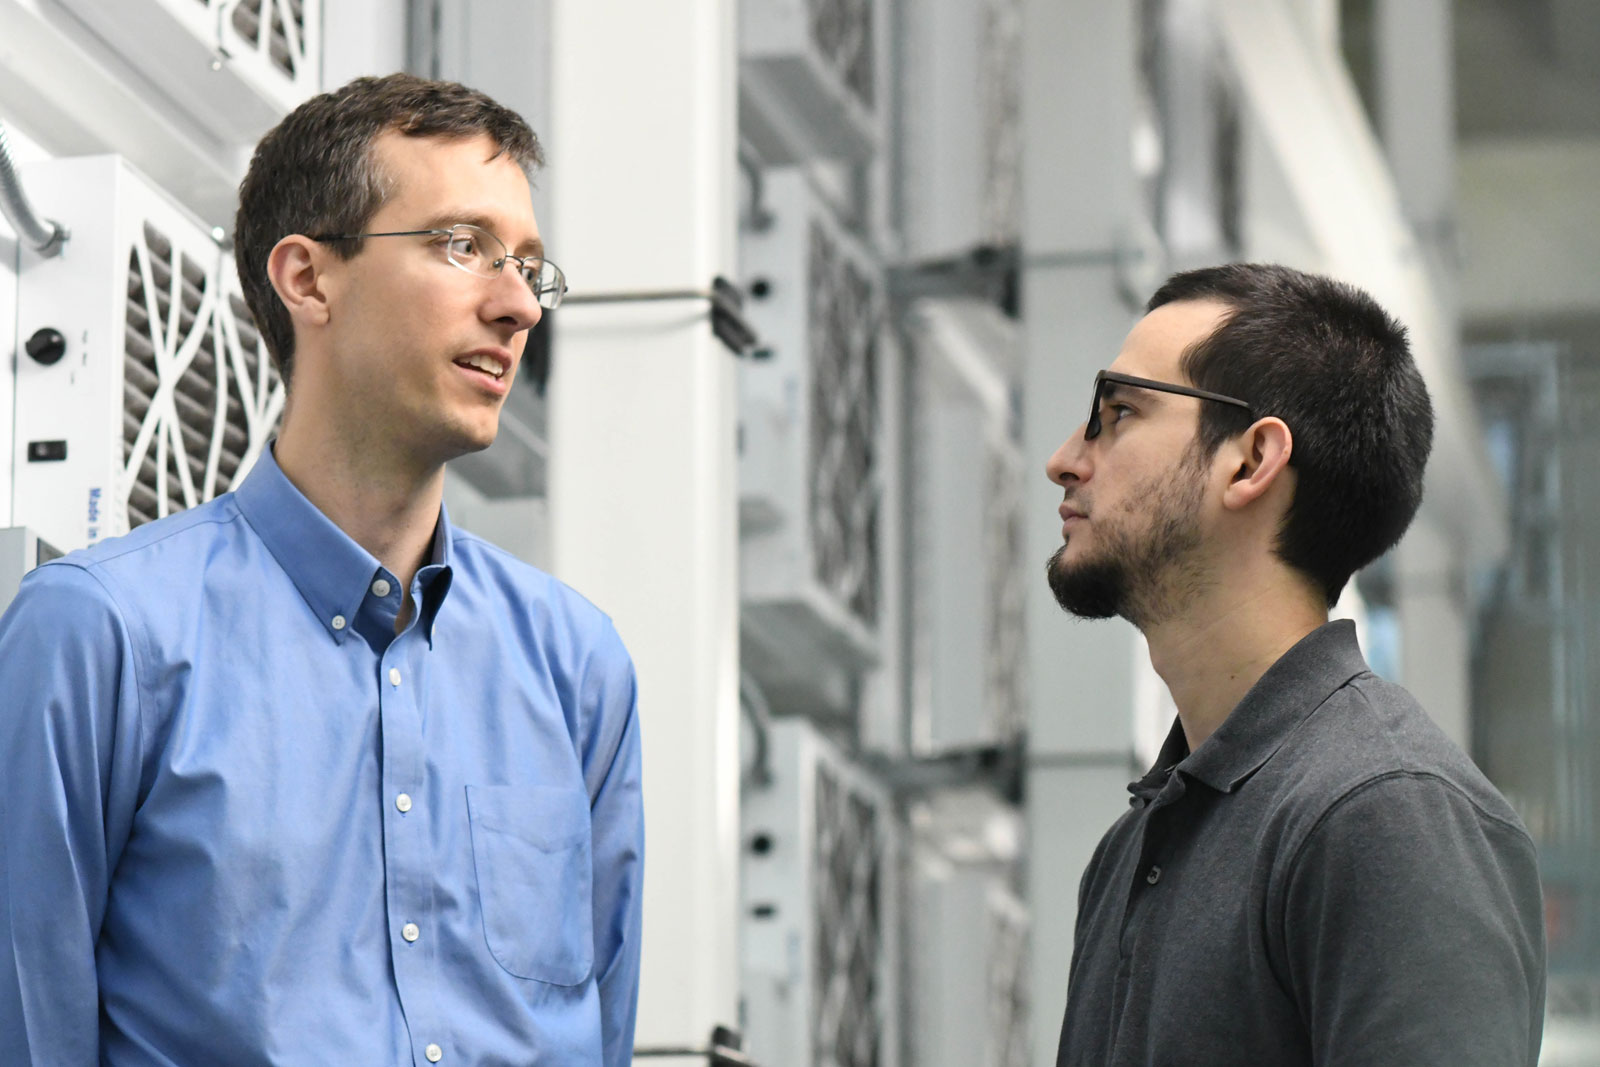 U.S. Naval Research Laboratory Aerospace engineers Evan Ward (left) and Greg Carbott (right). NRL Photo by Emanuel Cavallaro.